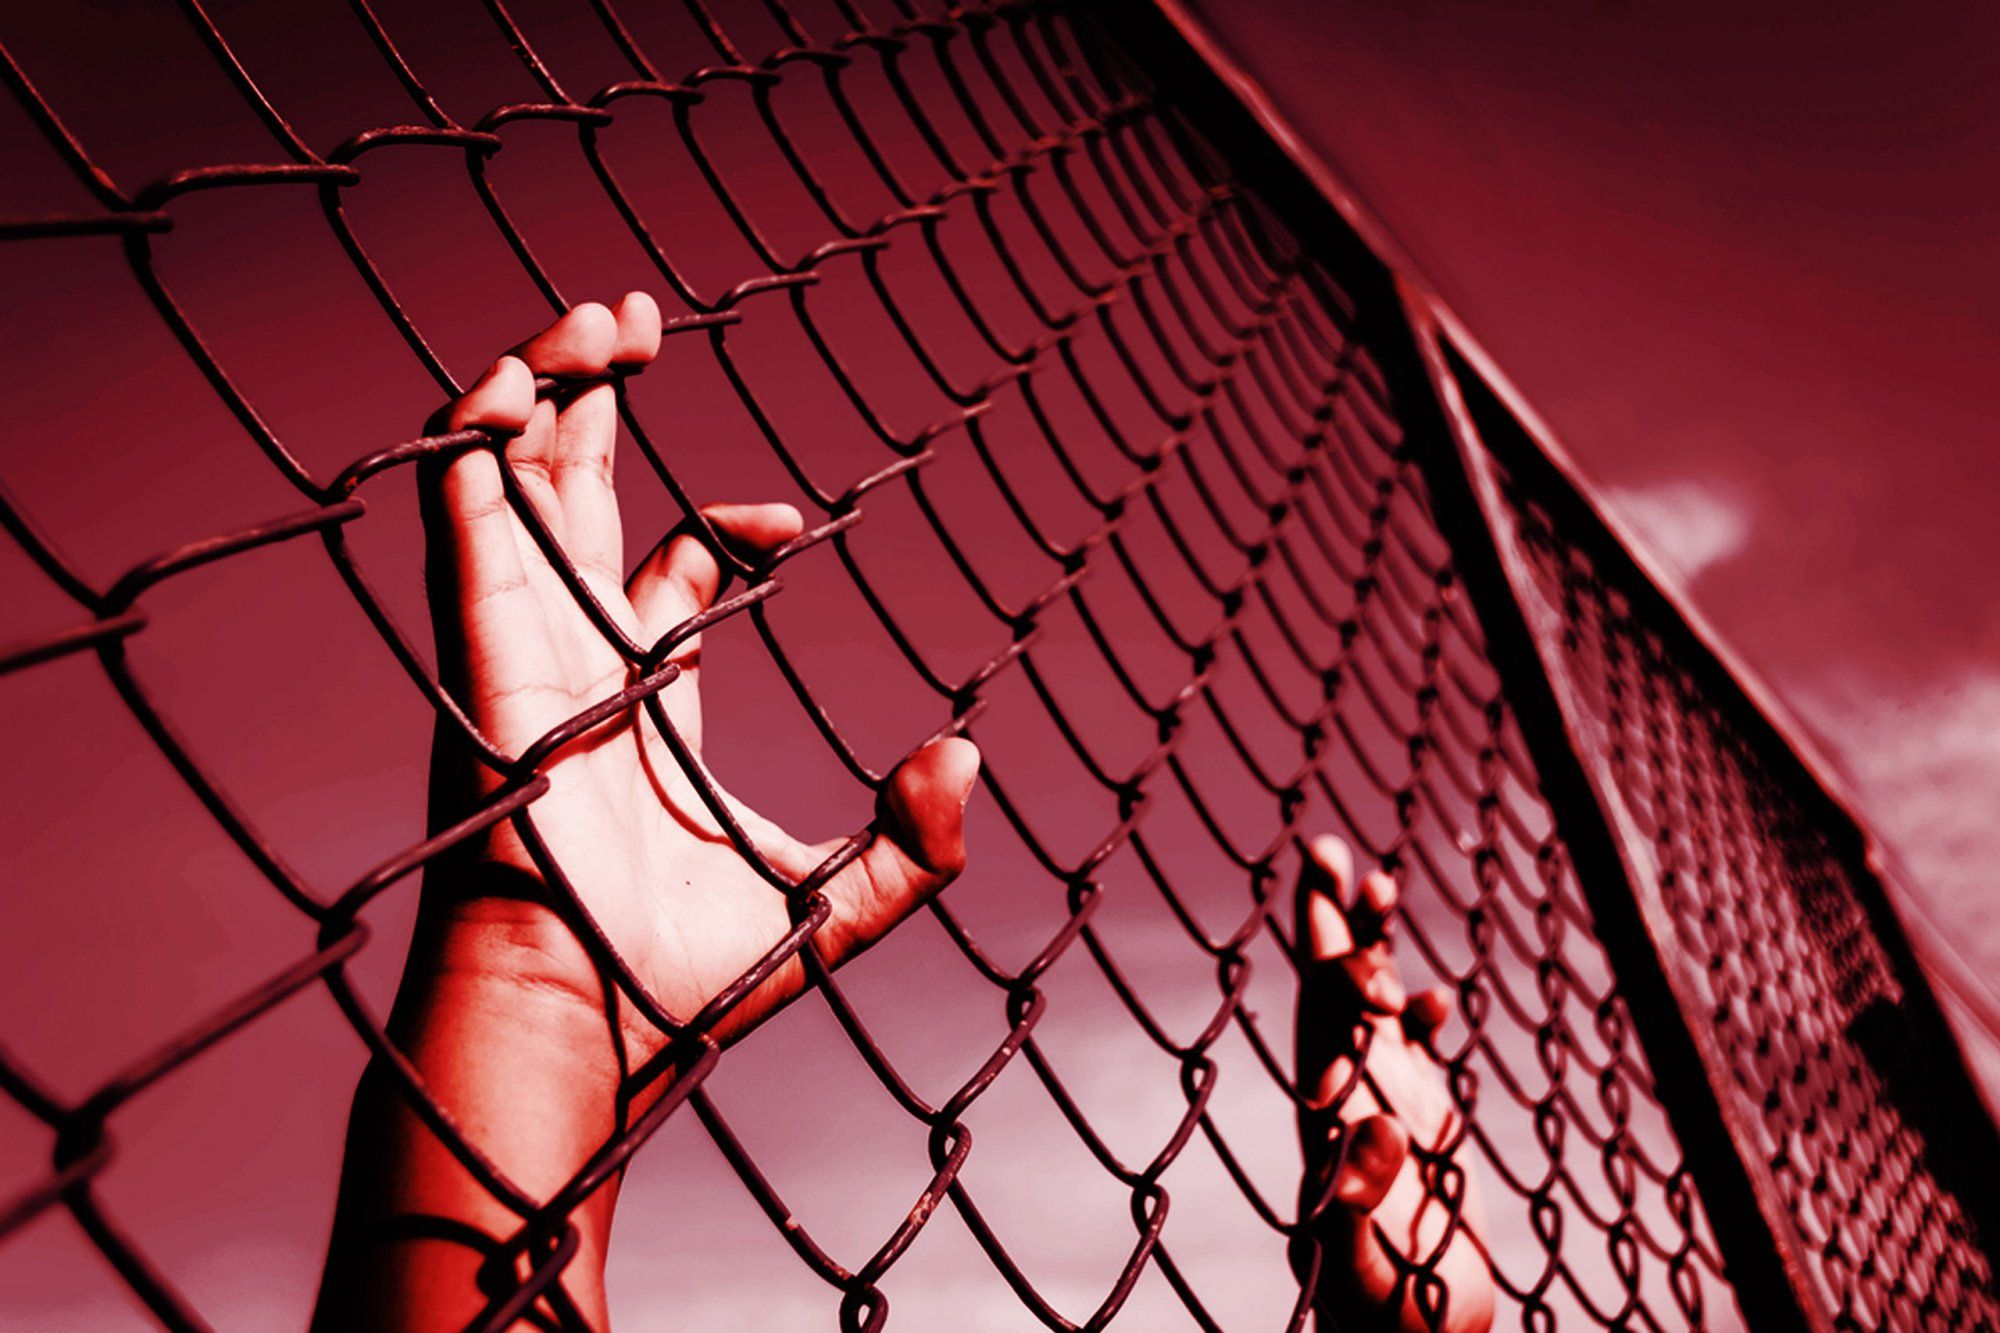 Detainees sue private prison for forced labor forced